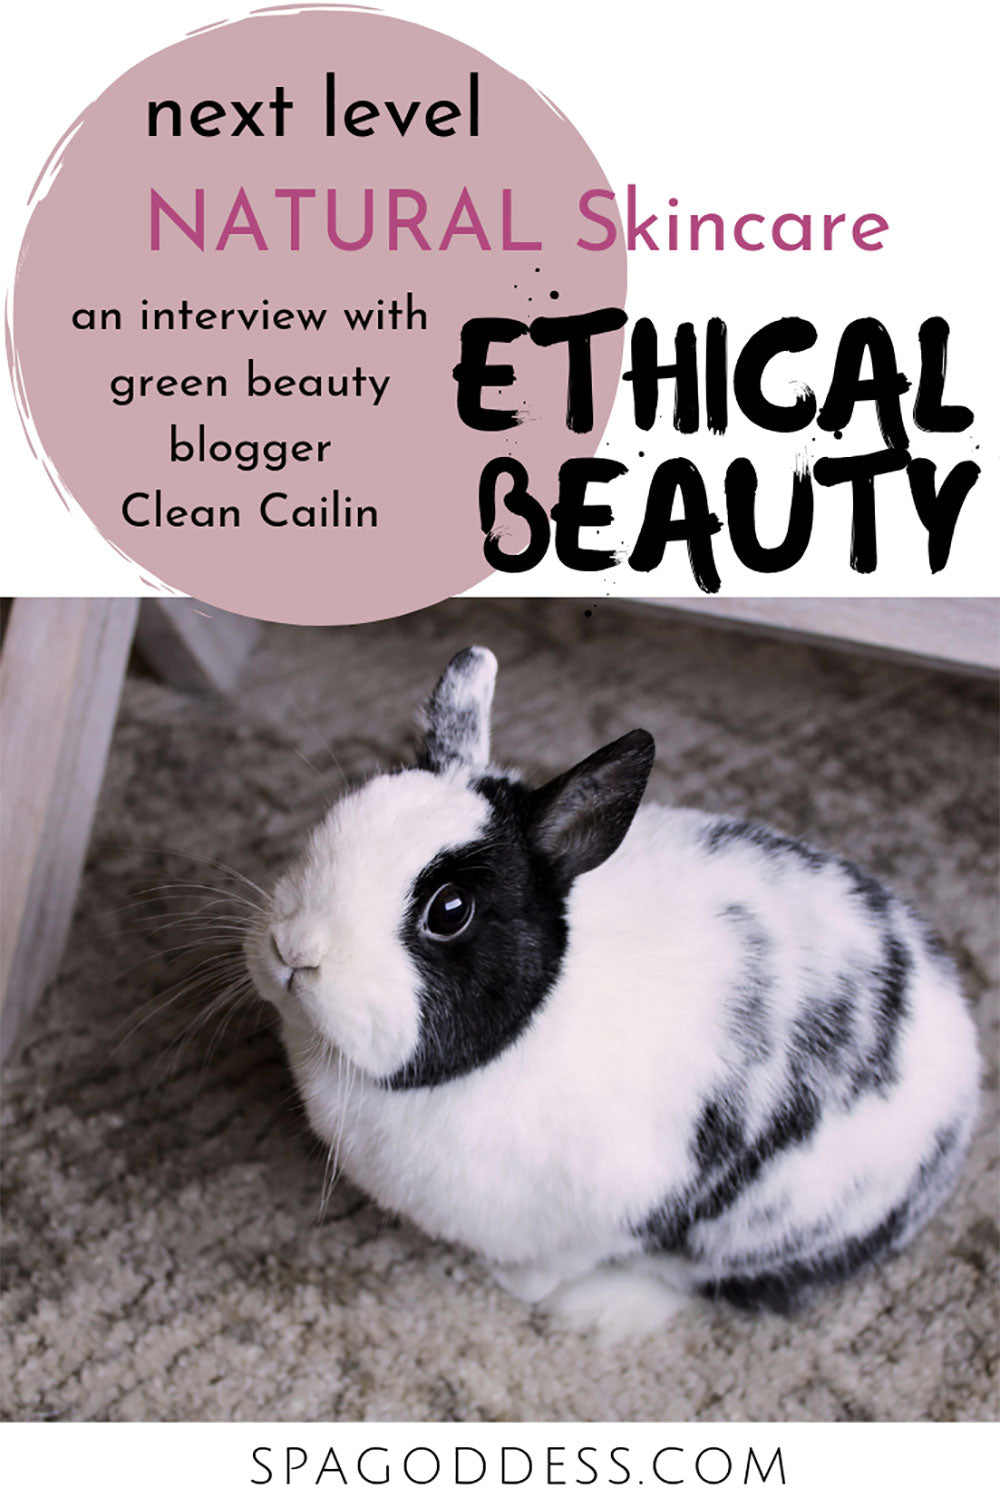 ETHICAL BEAUTY :: AN INTERVIEW WITH CLEAN CAILÍN